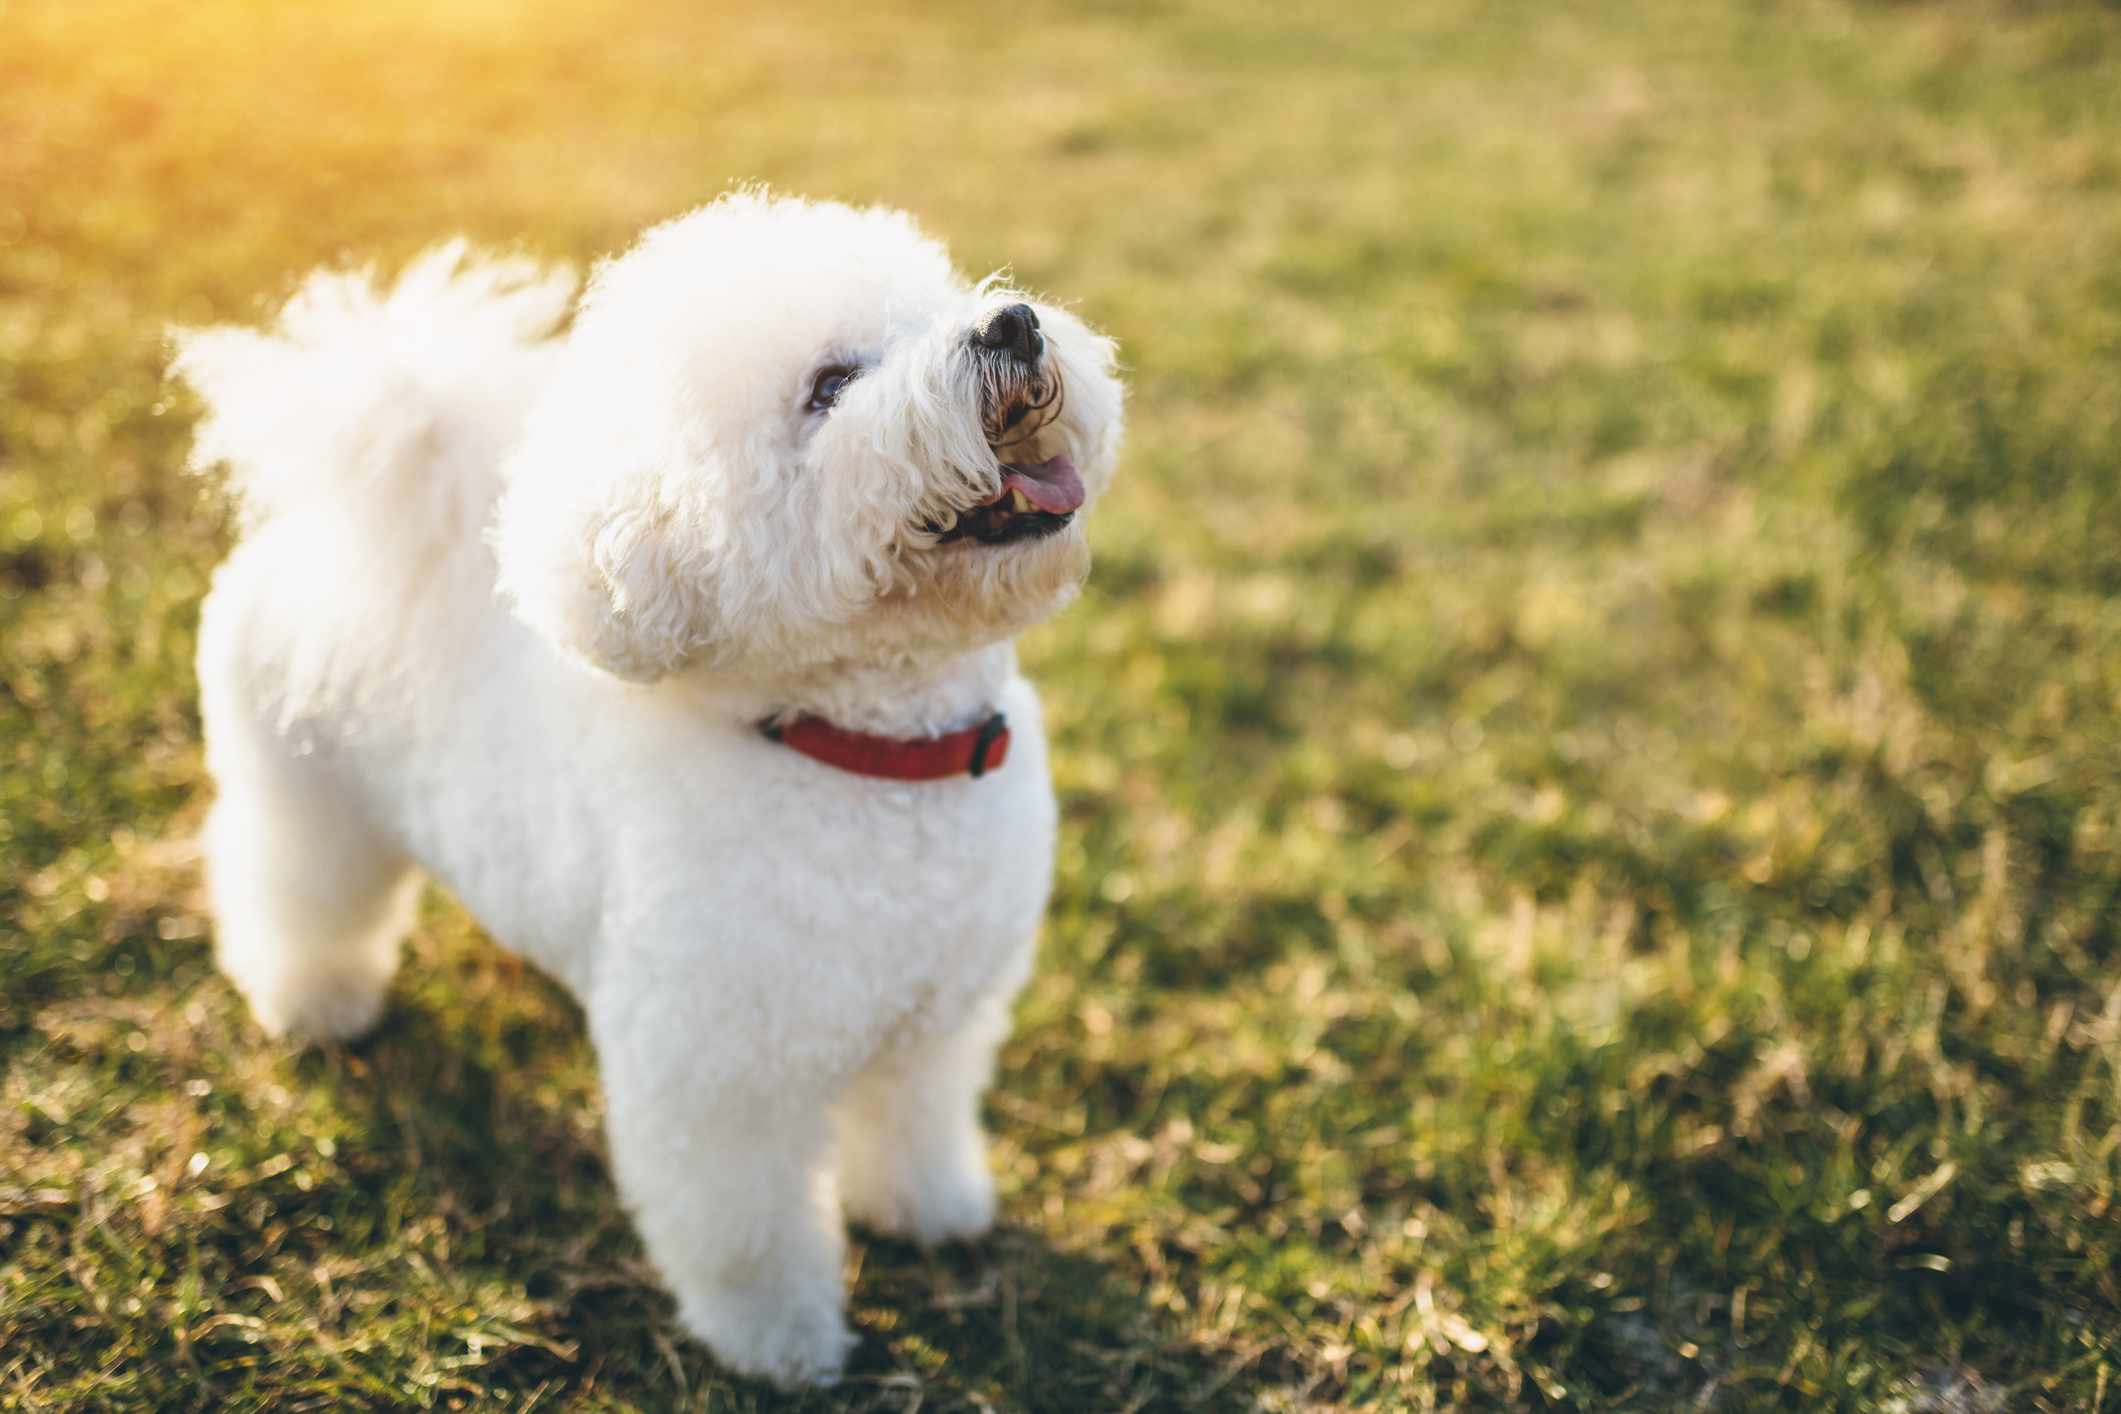 white bichon Frise standing on a grassy field looking up